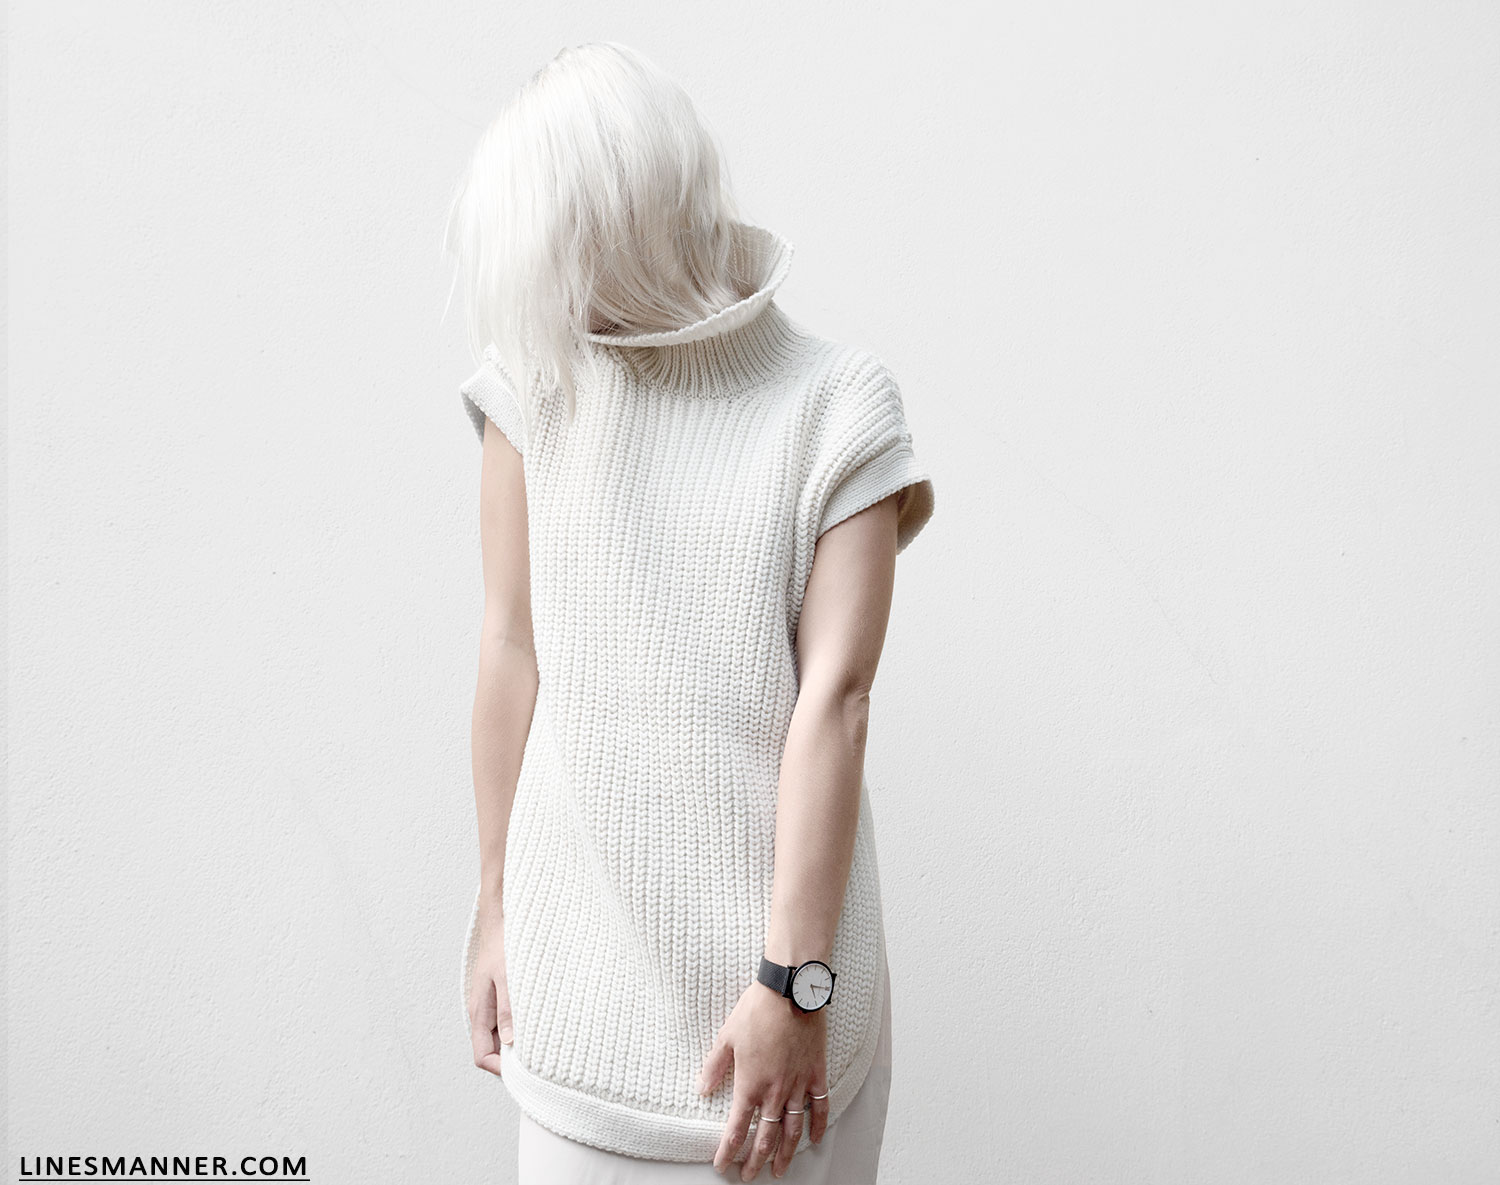 Lines-Manner-Sleeveless-Clean-Minimal-Effortless-Neutrals-Whiteout-Details-Essential-Staple-Statement_Piece-Knit-Sweater-Turtleneck-Trans_Seasonal-Larsson_And_Jennings-Warm-2